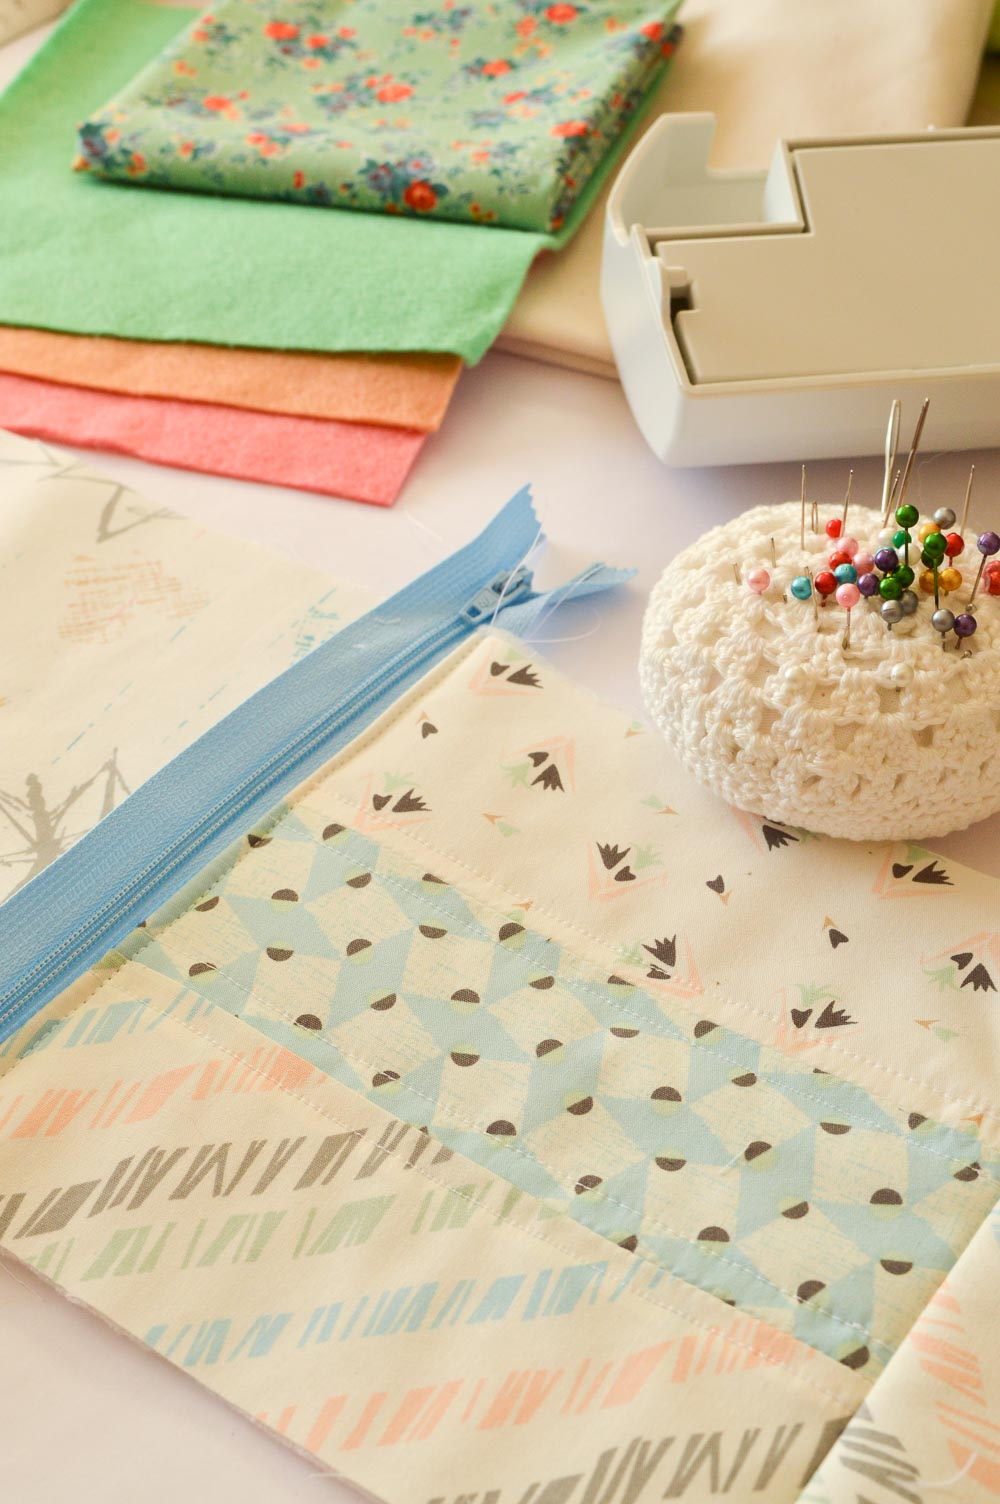 craftclubbox subscription review Crafting Fingers-10